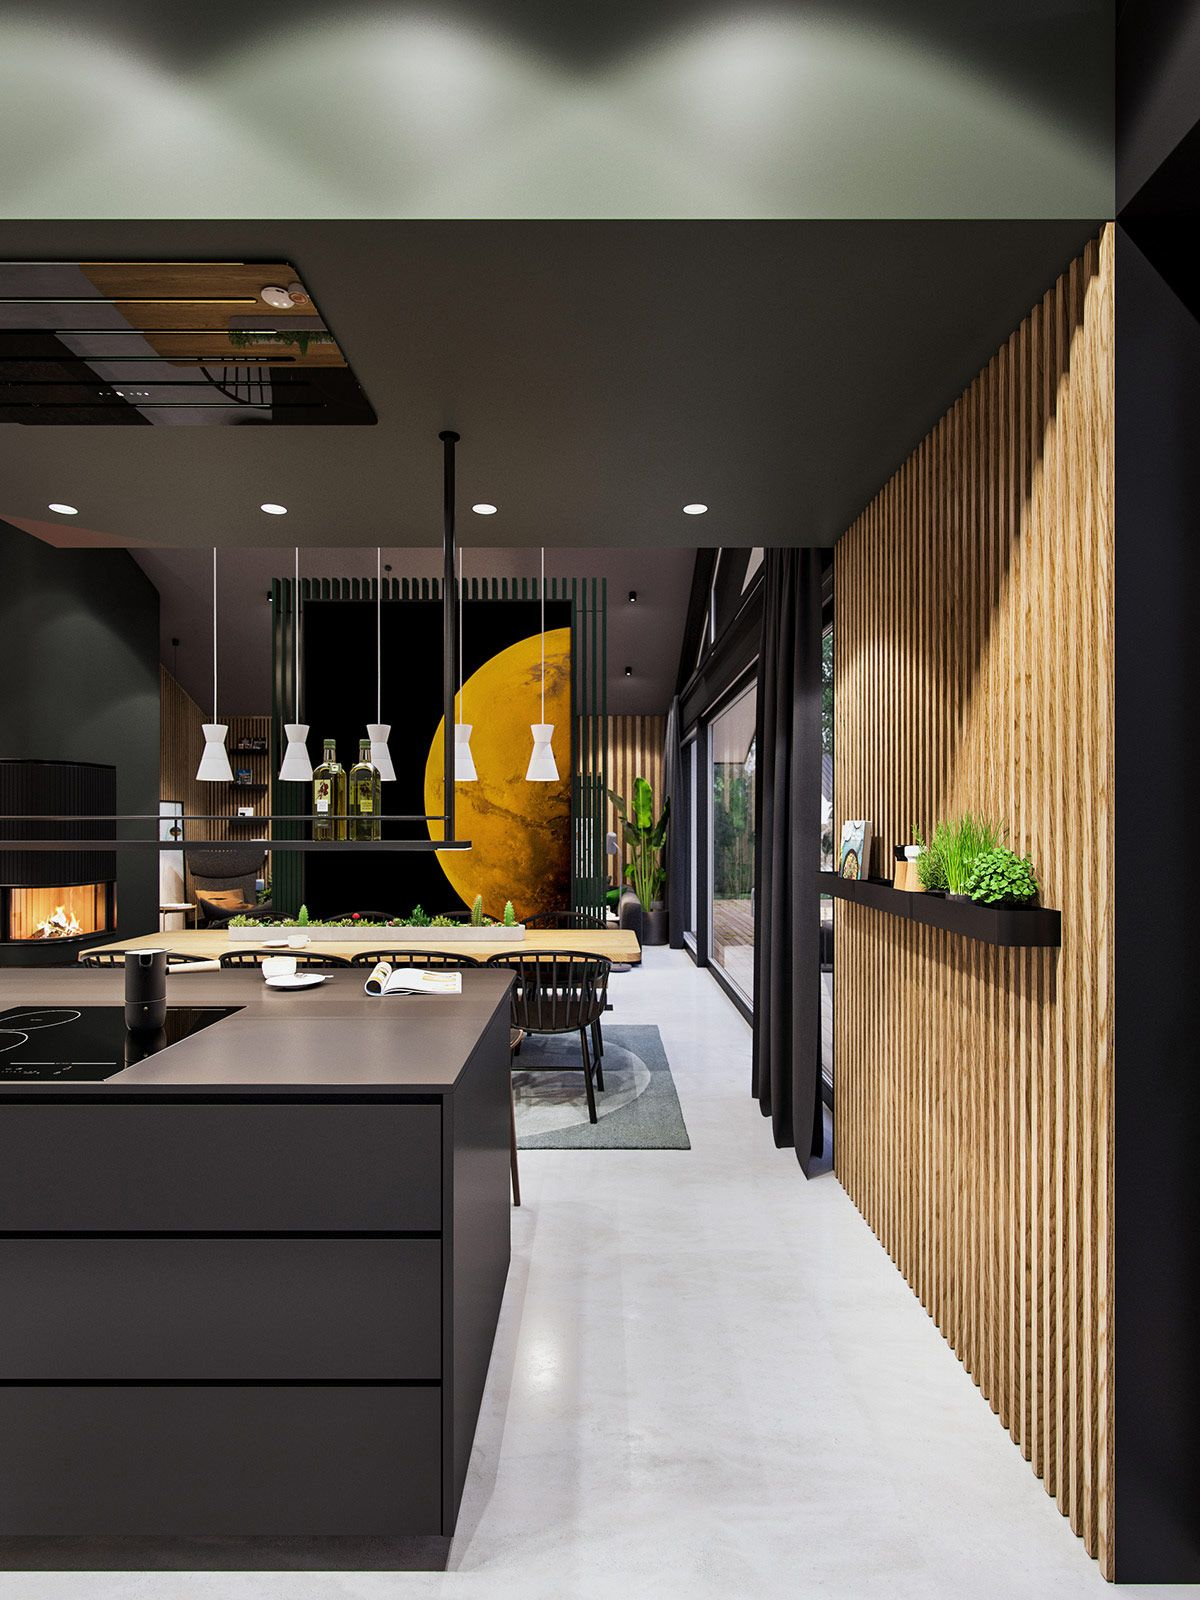 Interstellar An Out Of This World Stylish Home Interior House